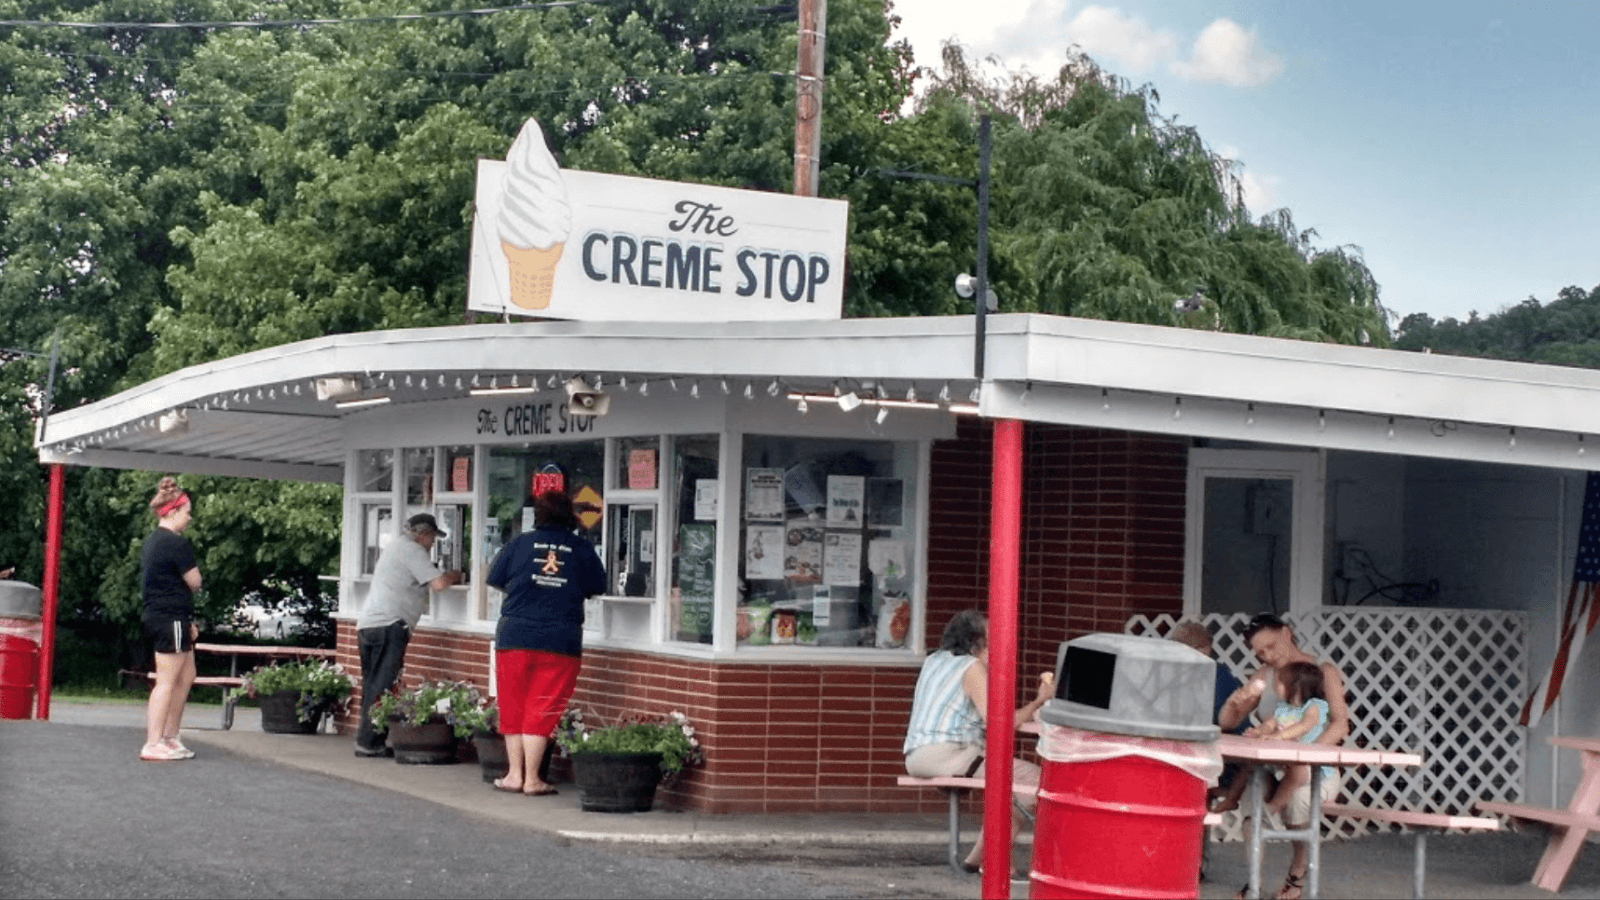 Creme Stop custard stand in rural PA